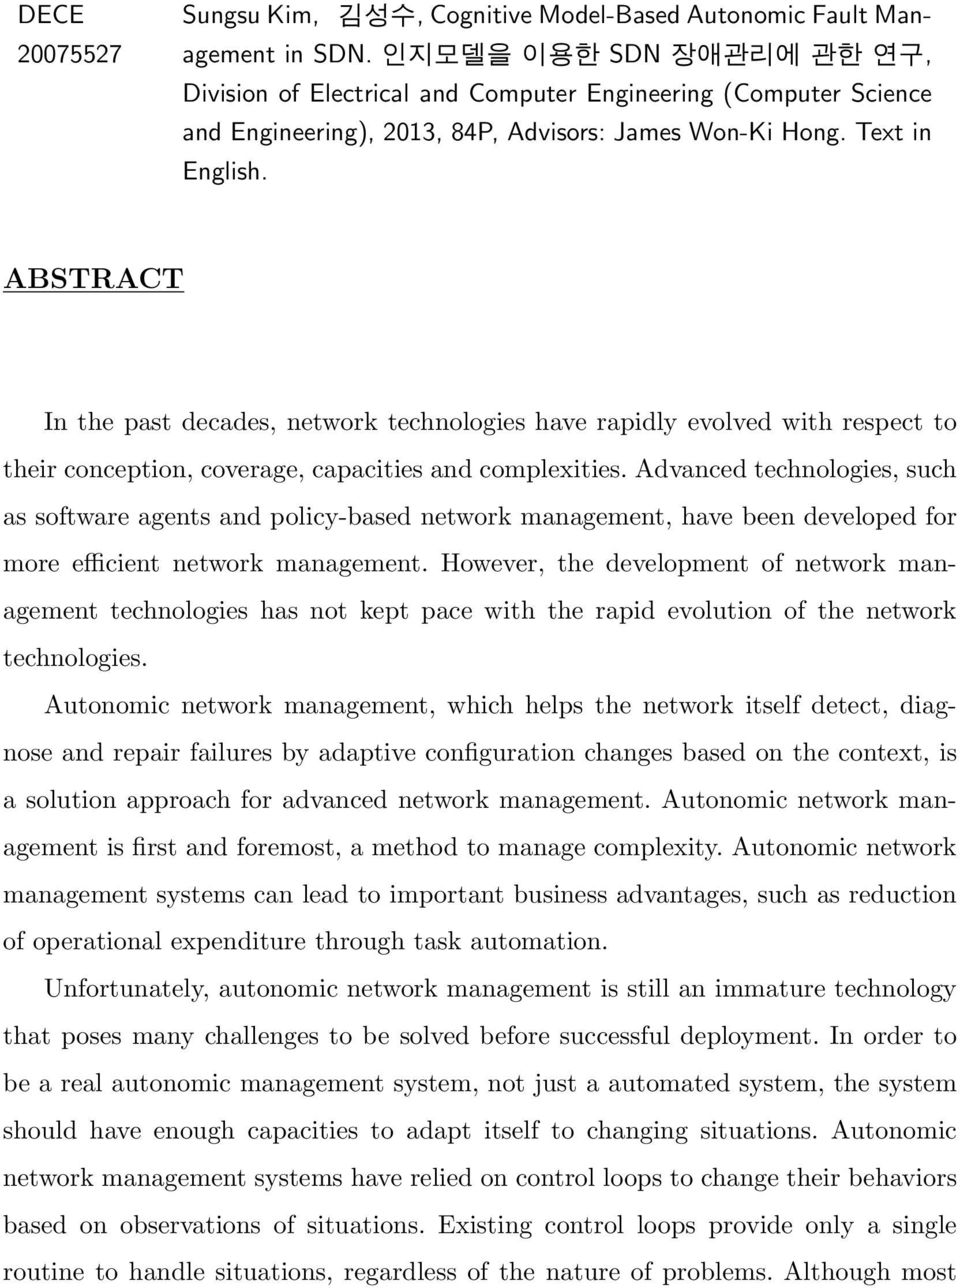 ABSTRACT In the past decades, network technologies have rapidly evolved with respect to their conception, coverage, capacities and complexities.